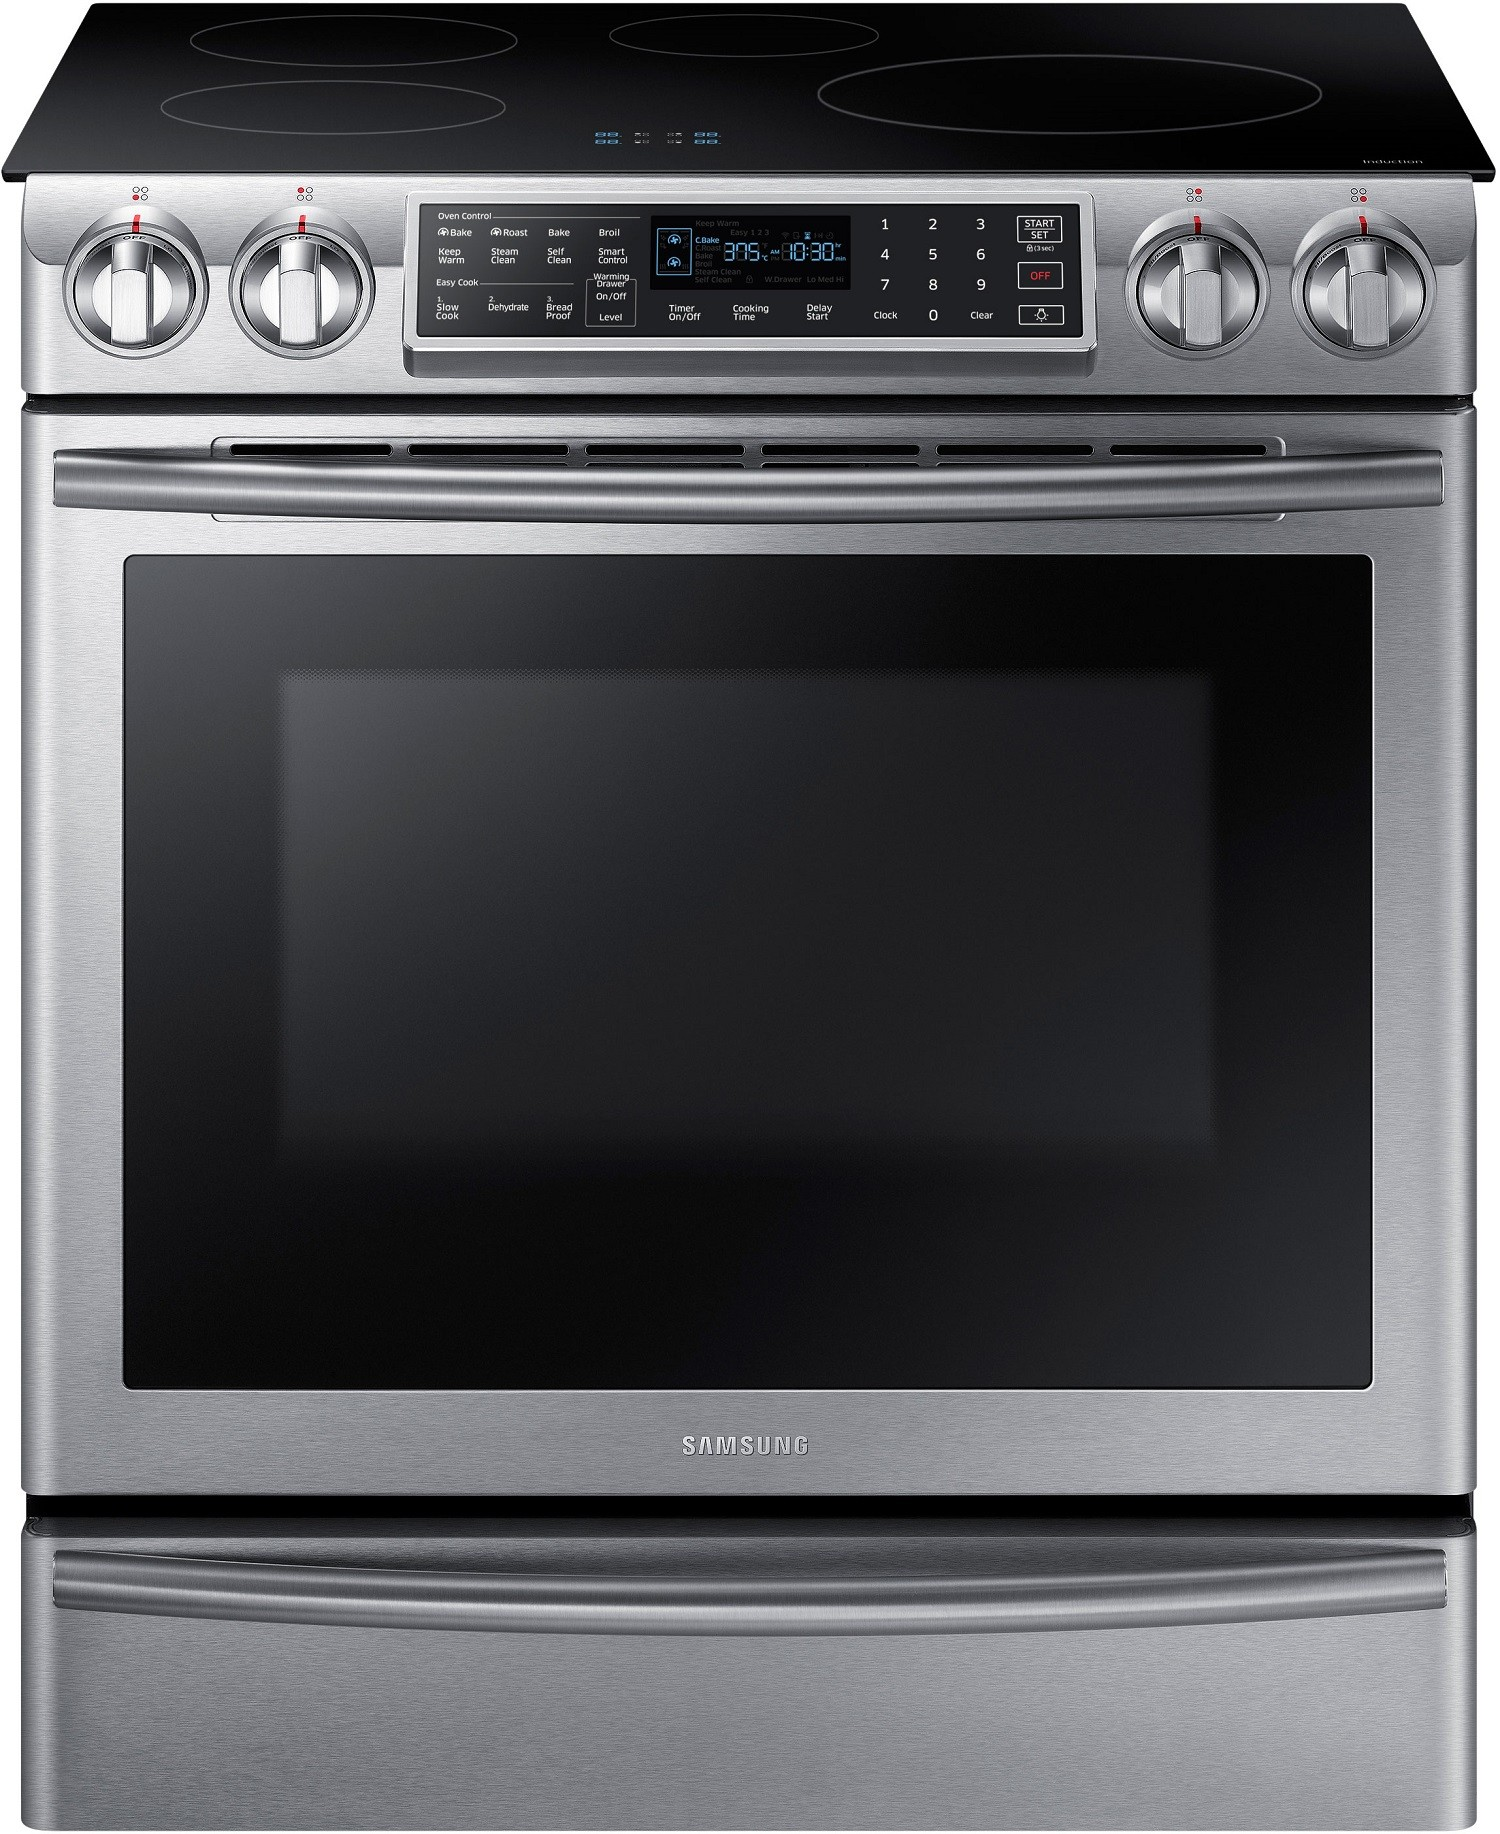 Samsung Ne58k9560ws 30 Inch Induction Slide In Range With 5 8 Cu Ft Dual Fan Convection Oven Virtual Flame Technology Wifi Connectivity Delay Start